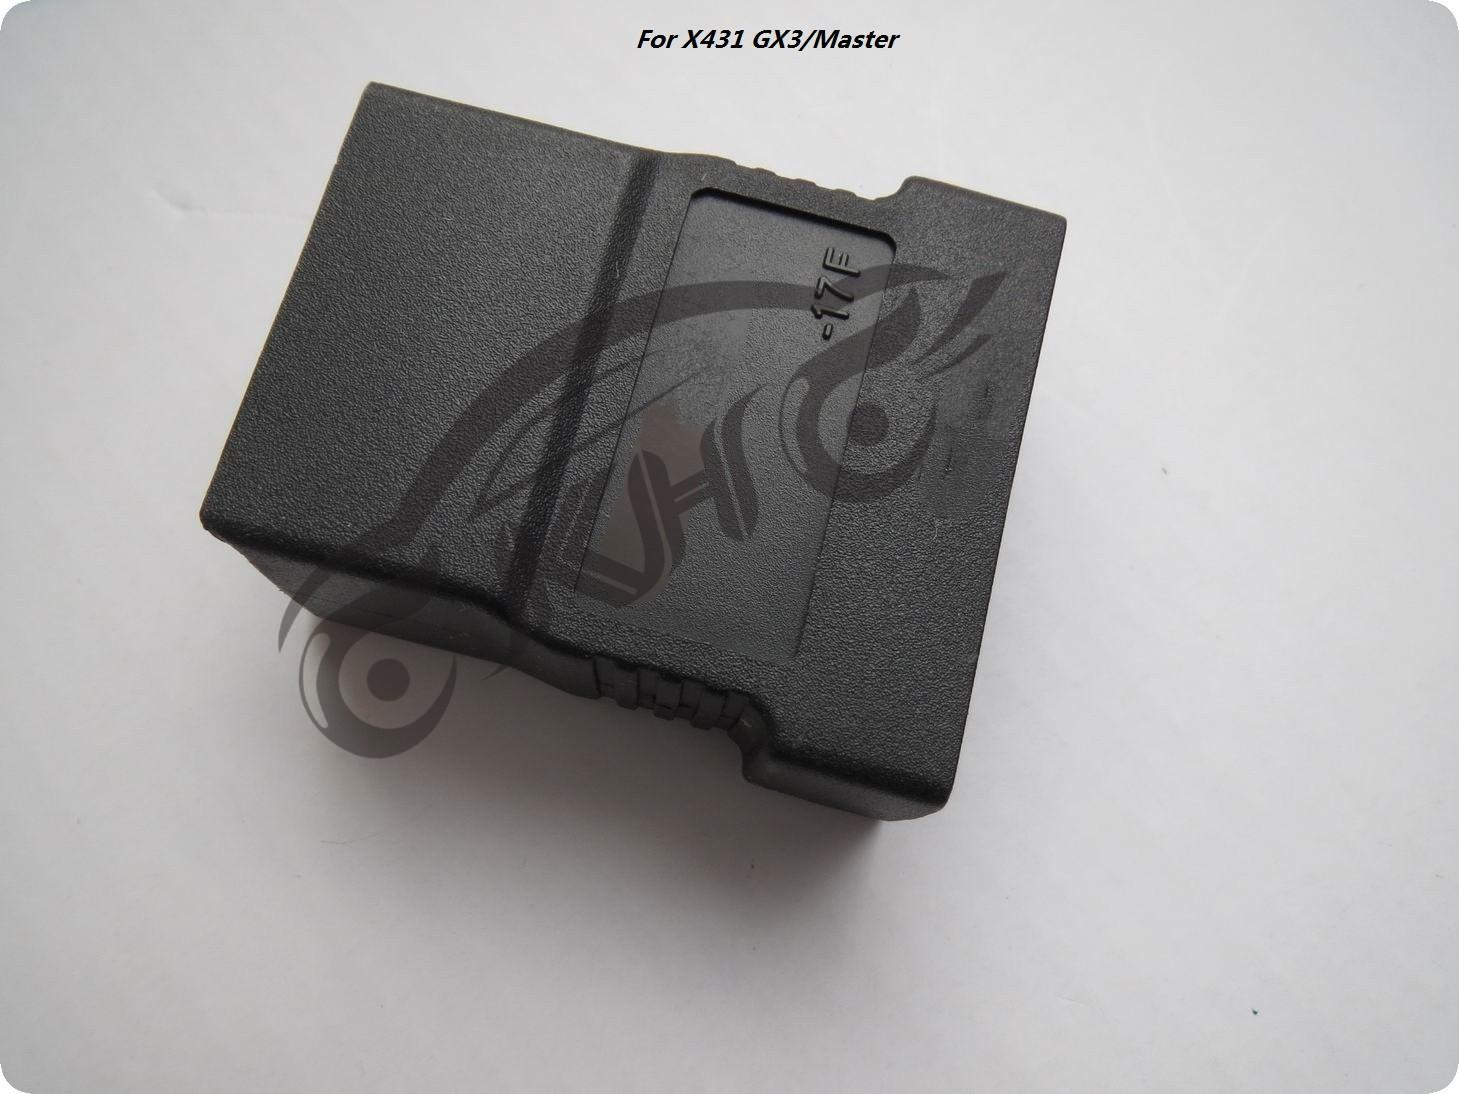 Original For Launch X431 For Hainan Mazda -17f Pins Adaptor Gx3 Maste For Hainan Mazda -17f Connector Connecter Obd2 Adapter